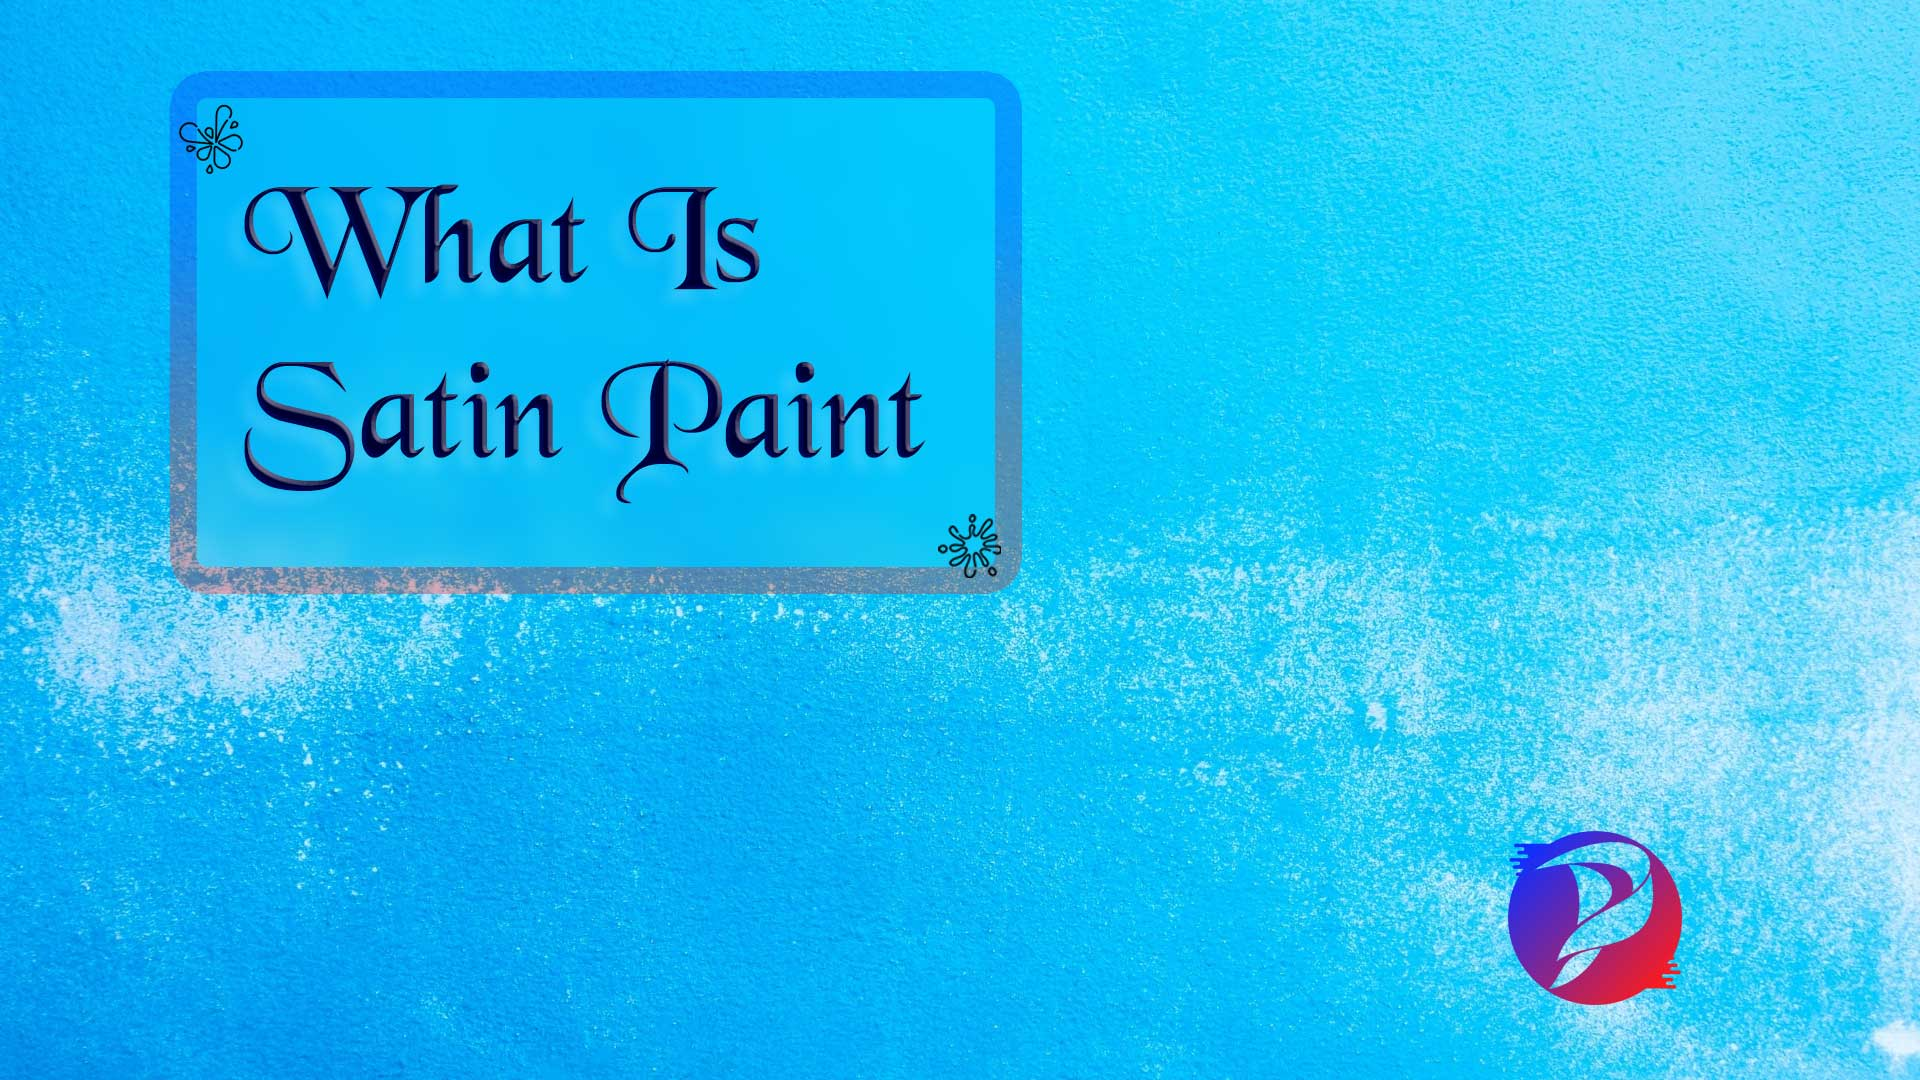 What is SatinPaint